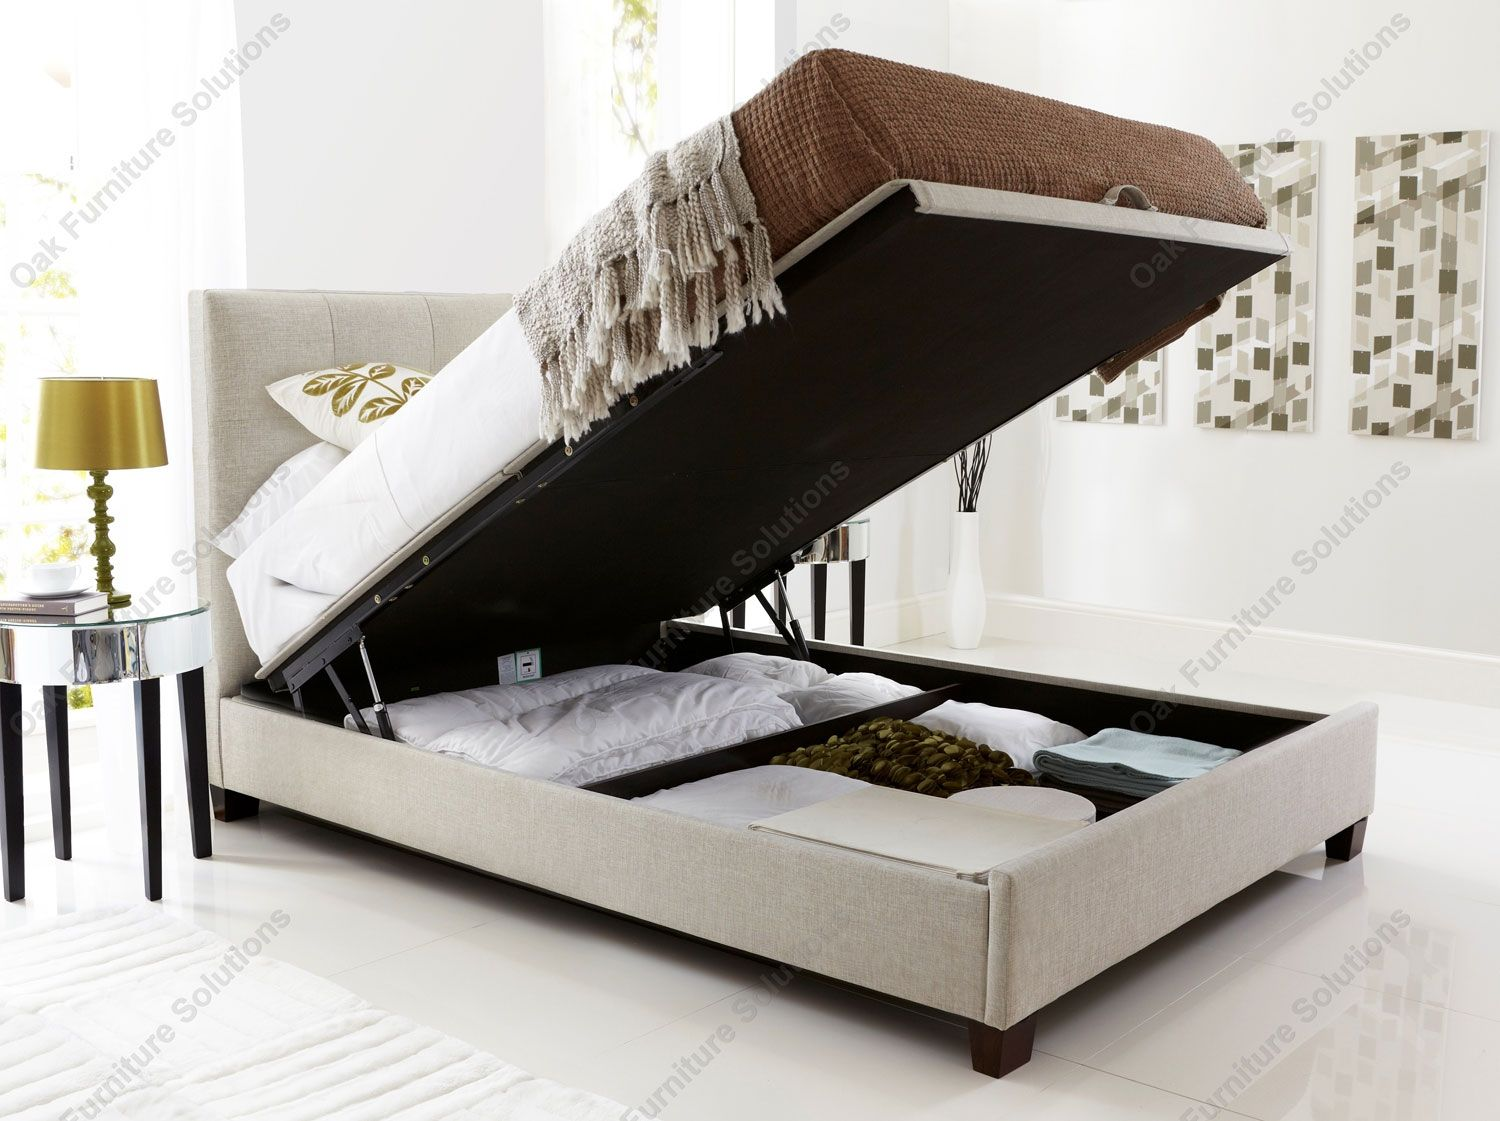 Kaydian Walkworth Oatmeal Fabric Ottoman Storage Bed 2 | HOME ITEMS ...